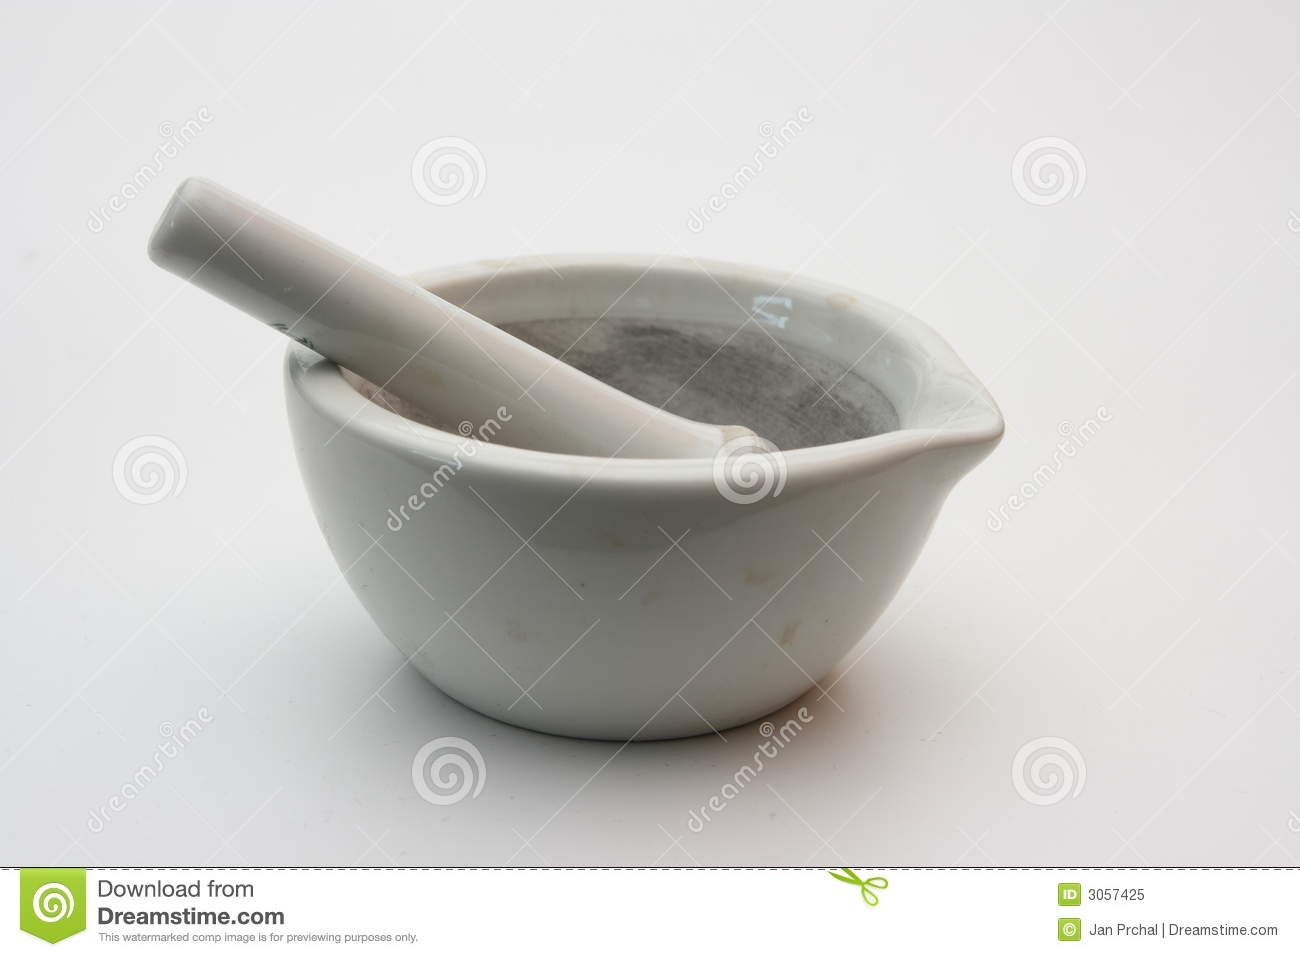 Grinding mortar and pestle stock image. Image of pharmacy - 3057425 for Mortar And Pestle Chemistry  45ifm